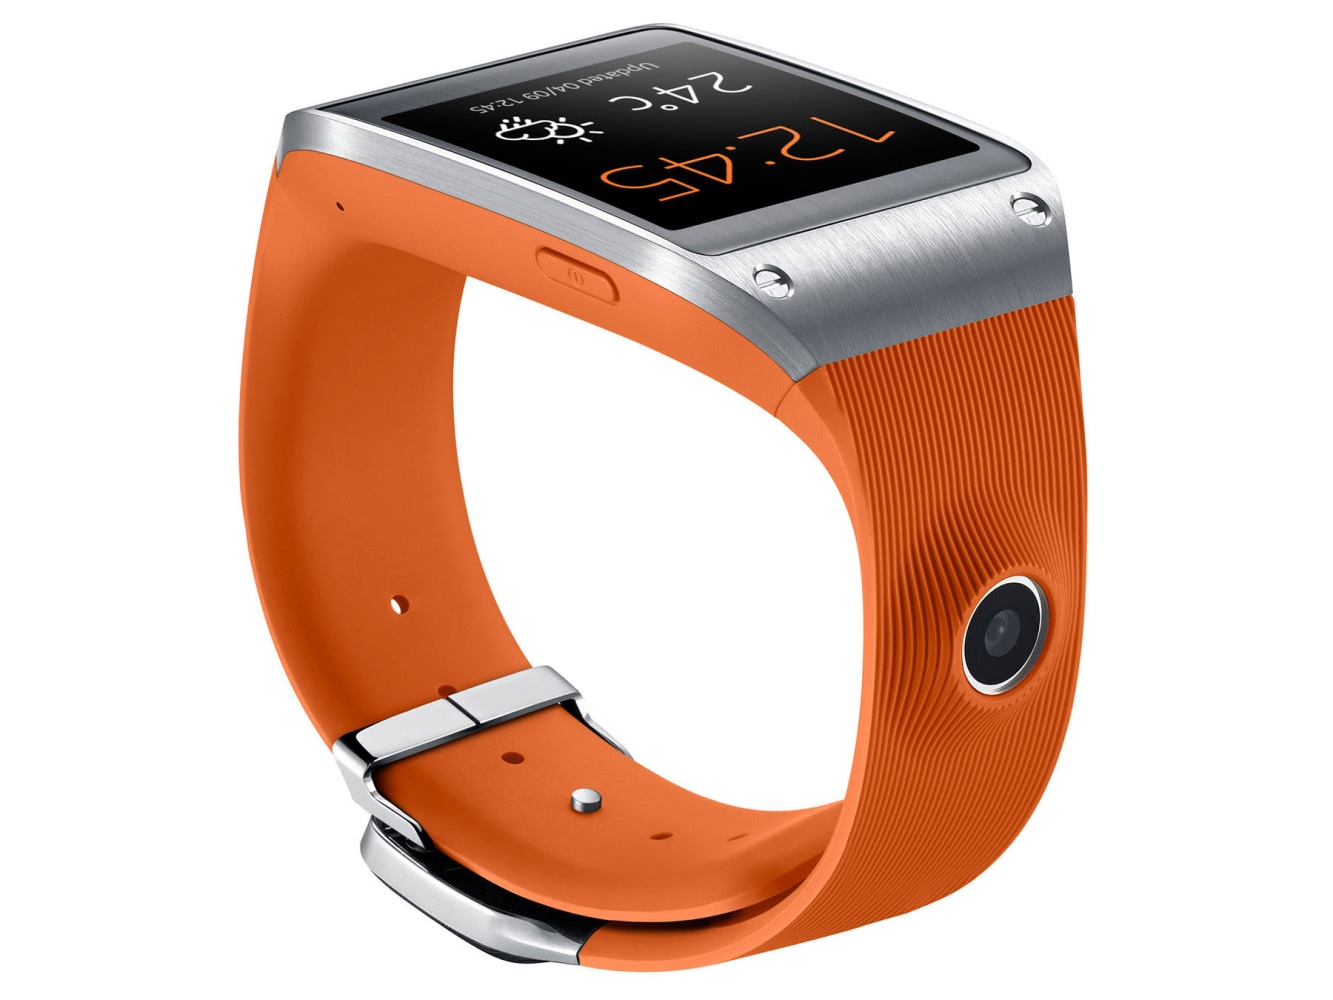 Reasons for — and against — buying a Samsung Galaxy Gear smartwatch